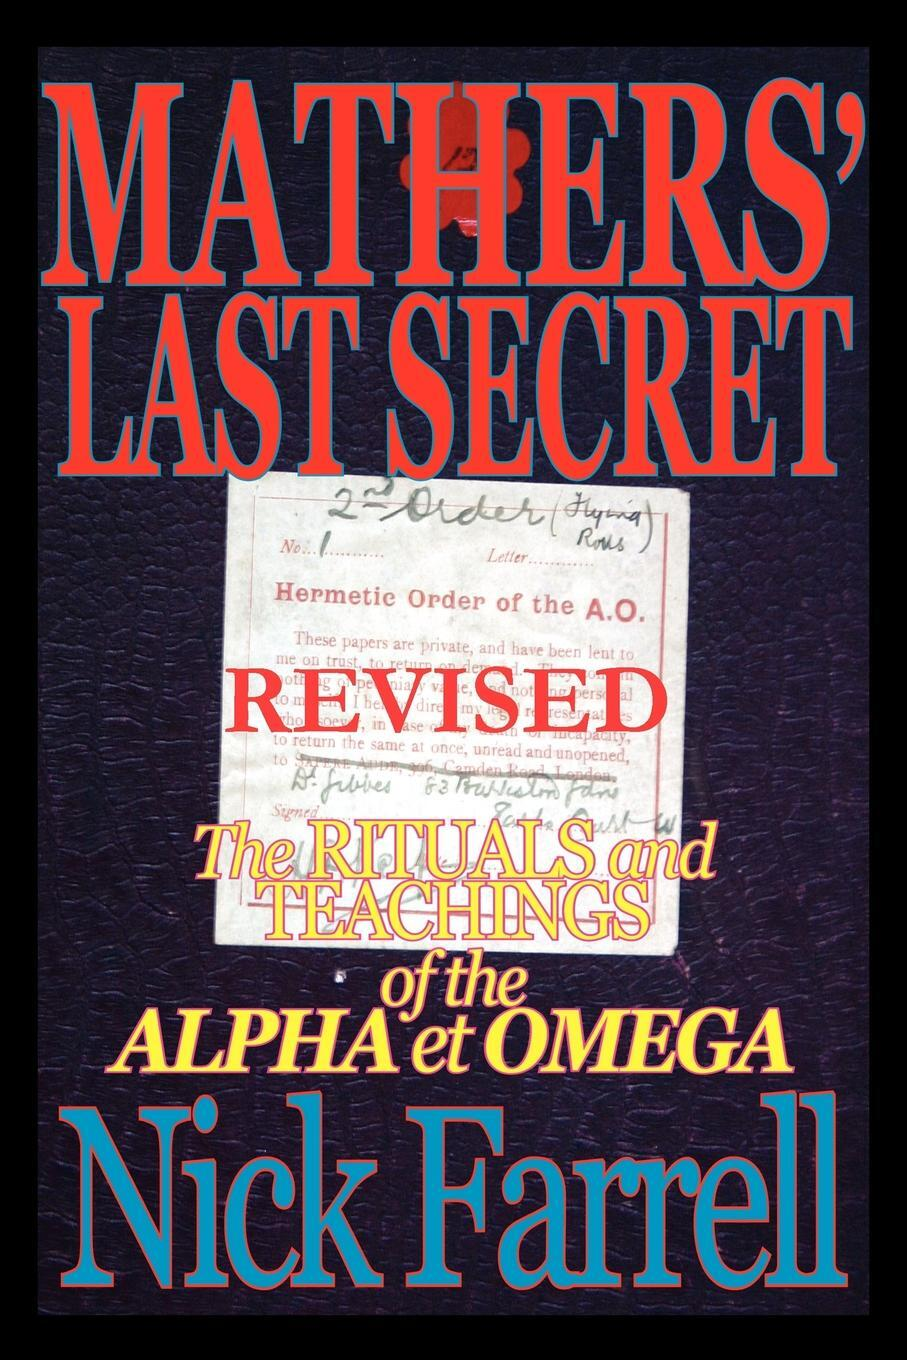 Mathers` Last Secret REVISED - The Rituals and Teachings of the Alpha et Omega. Nick Farrell